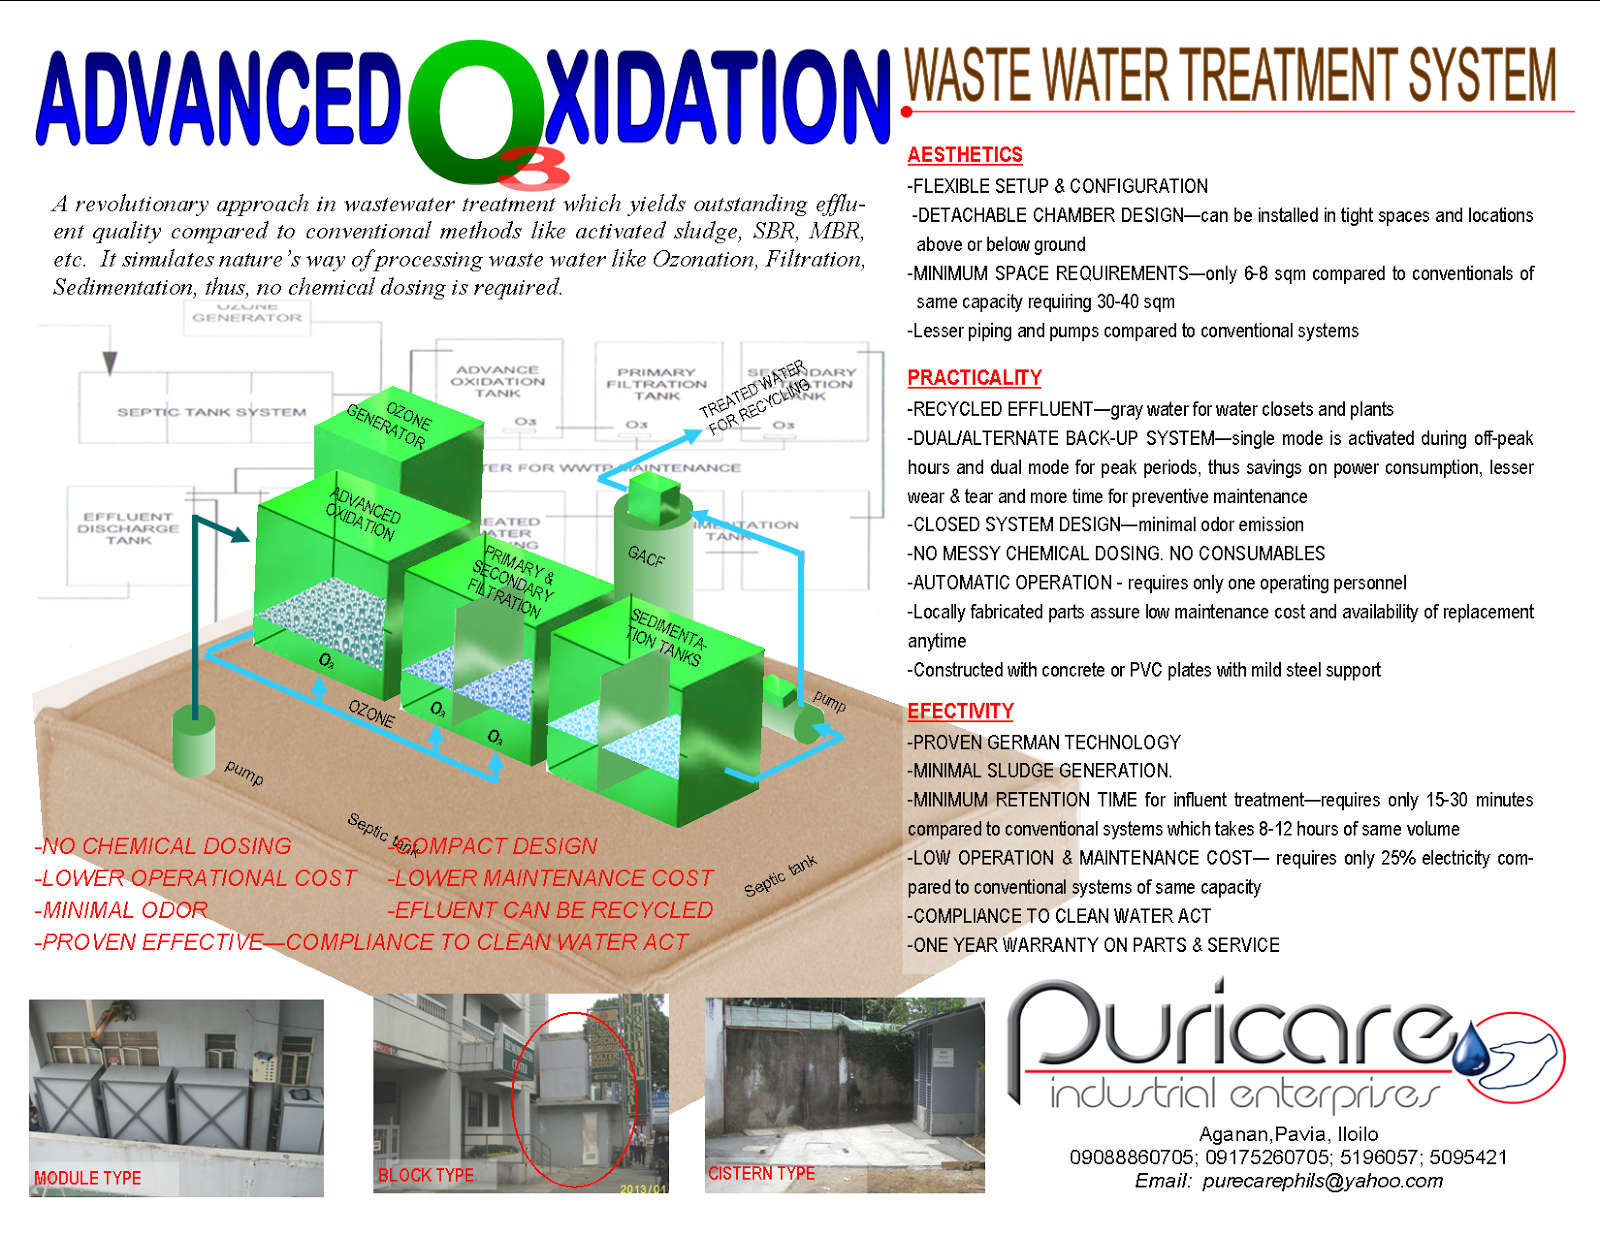 Puricare Industrial Enterprises Advanced Oxidation Waste Water S Sbr Process Flow Diagram Treatment System Has Been Used To Treat Wastewater From Groundwater Remediation Pump And Systems